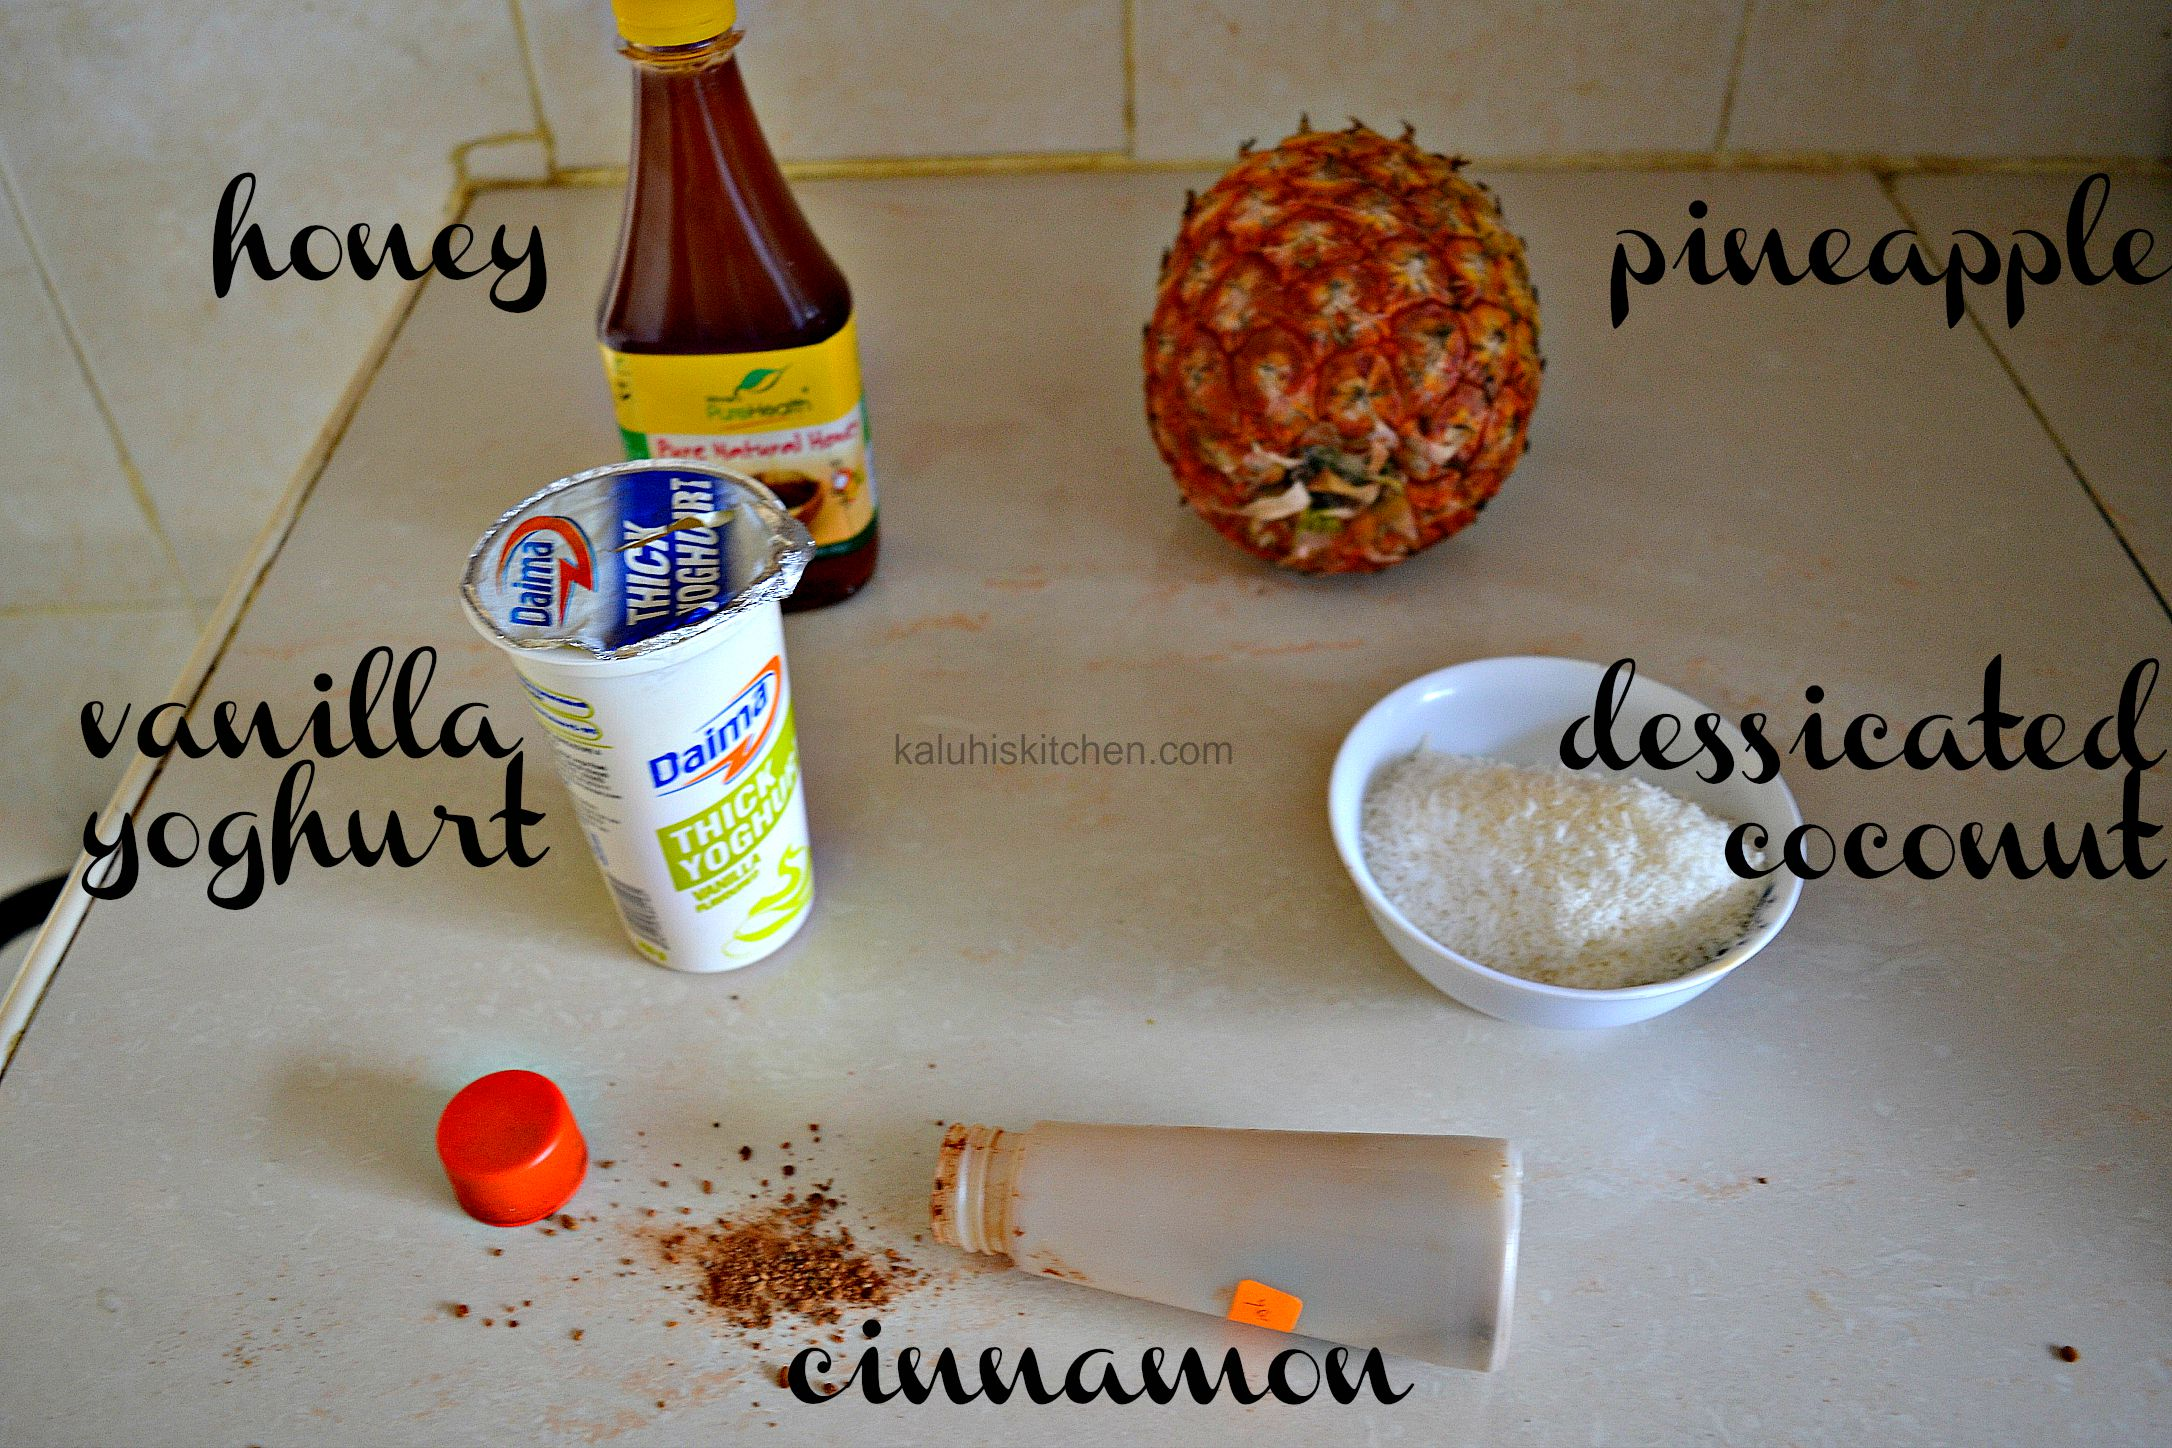 kaluhiskitchen.com_how to make pina colada_pina colada ingredients_